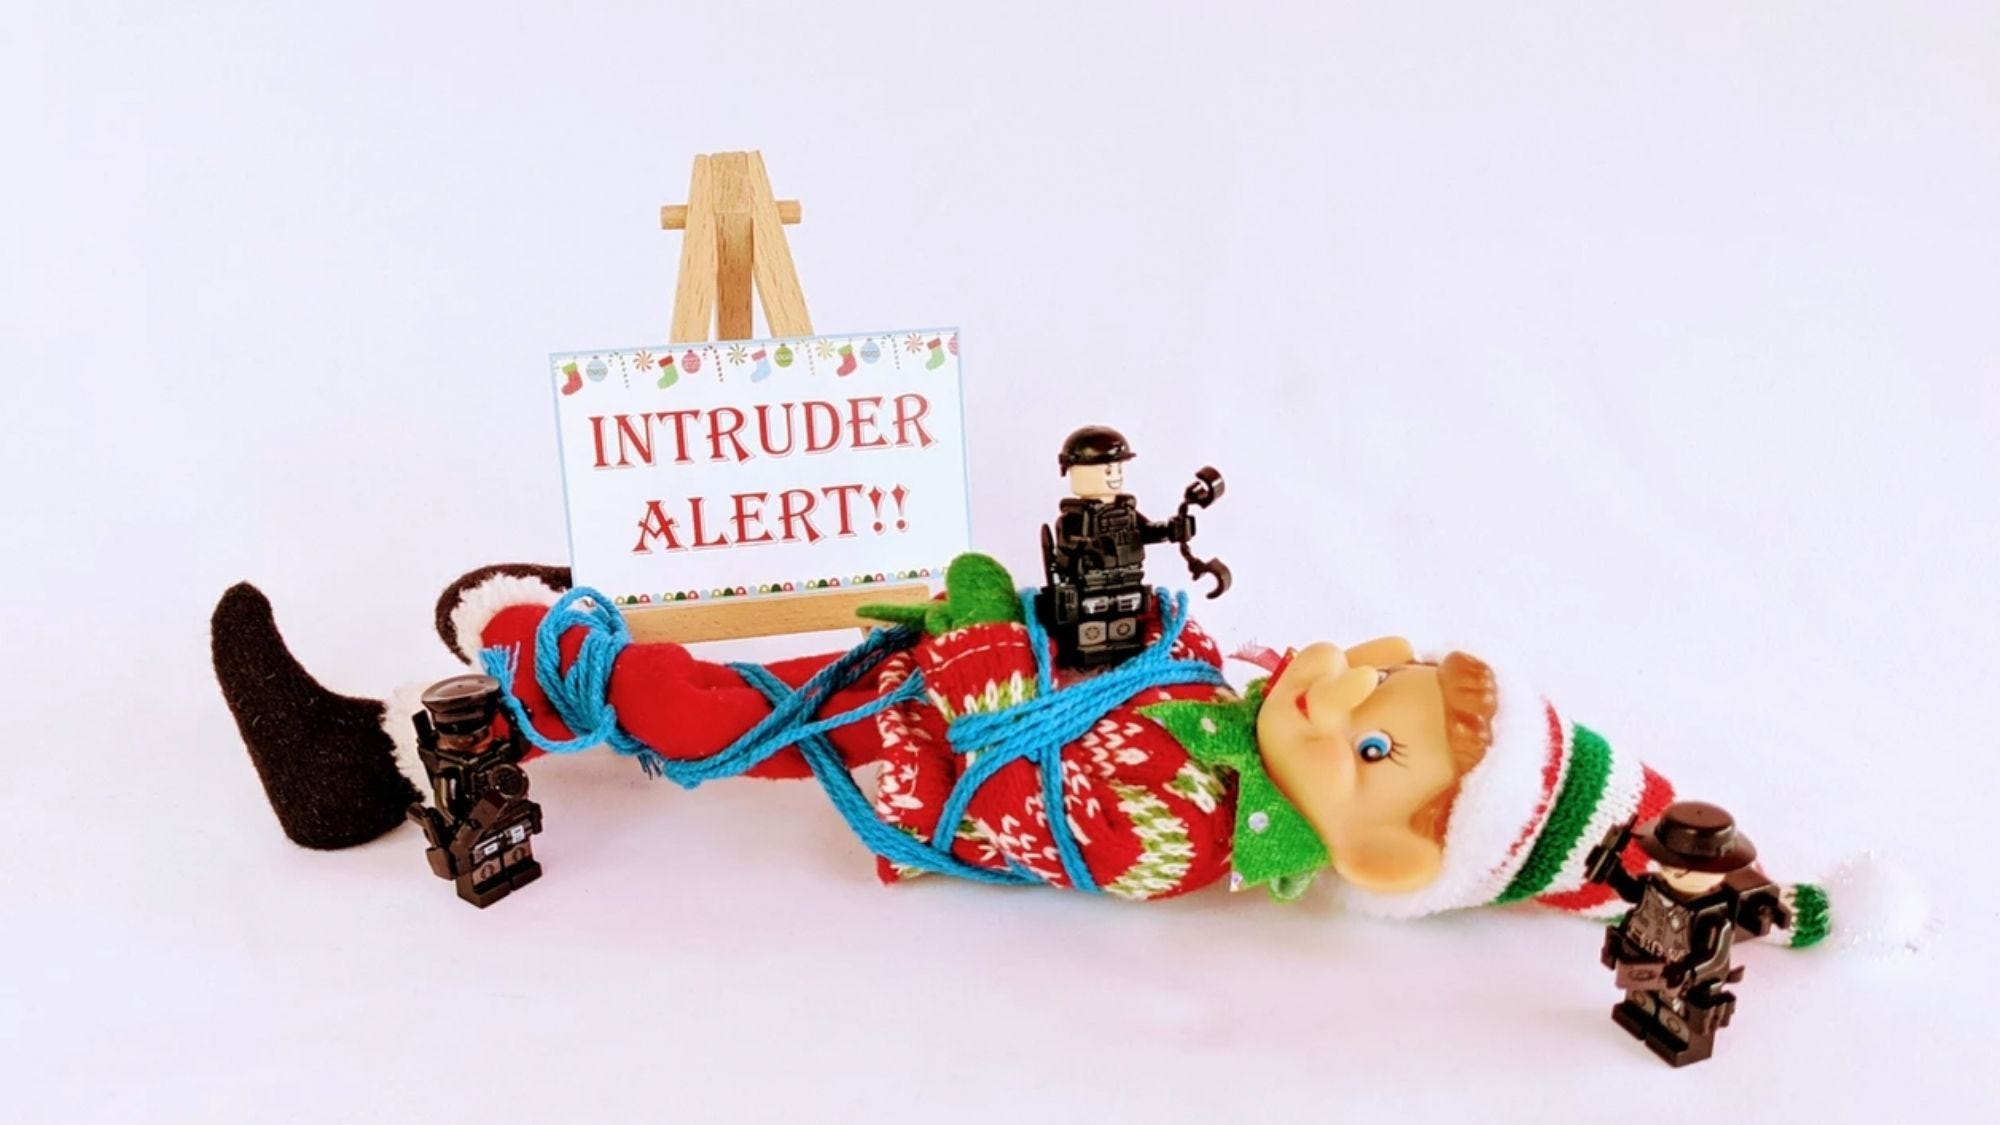 This kit is filled with wit and hilarity, to make for a truly impressive month with your elf.